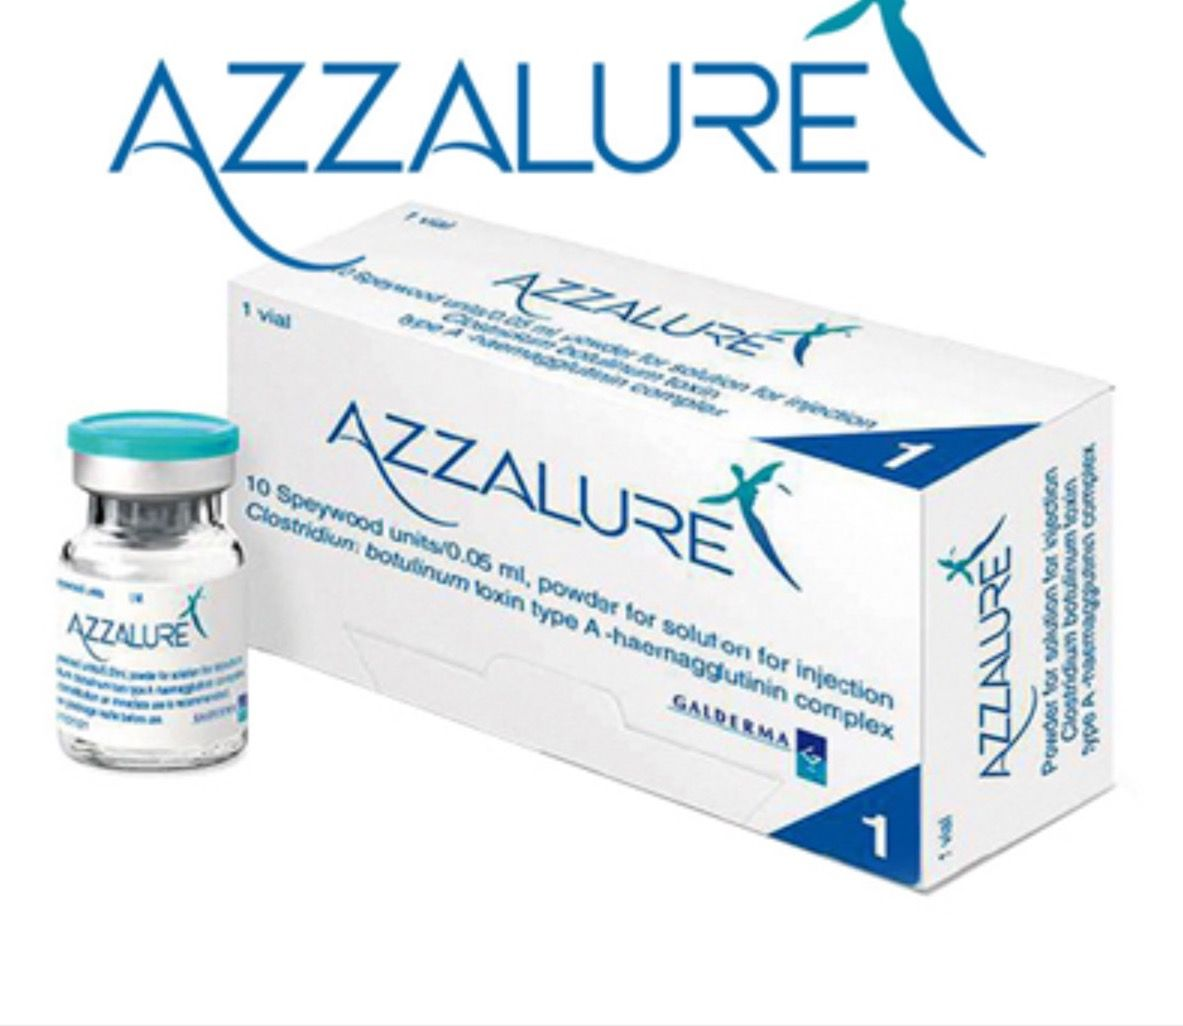 Azzalure is an anti wrinkle injection (botulinum type A